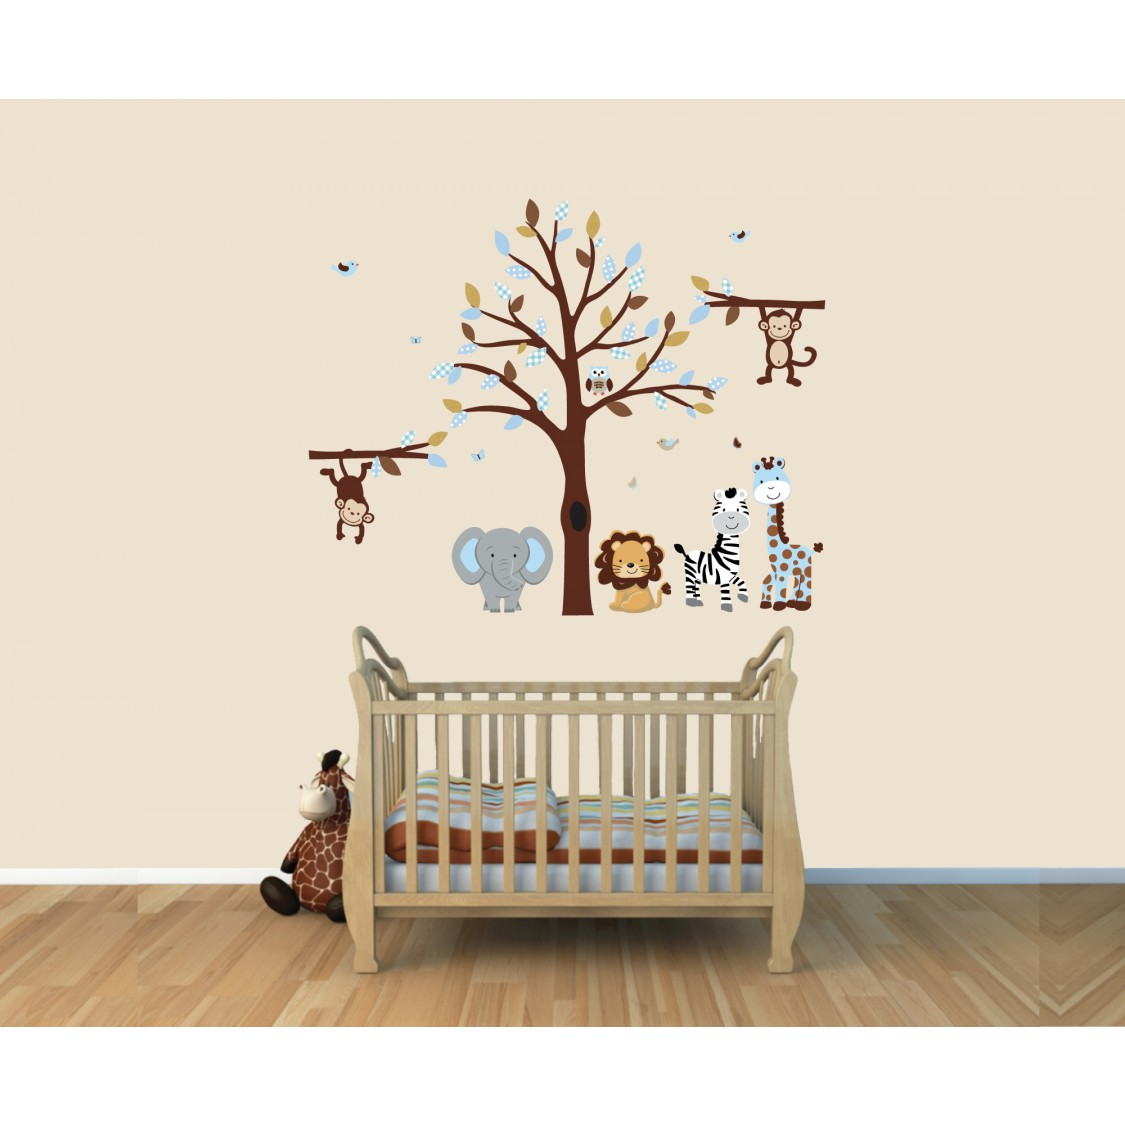 Blue Jungle Nursery Wall Decals With Animal Stickers For Kids Rooms